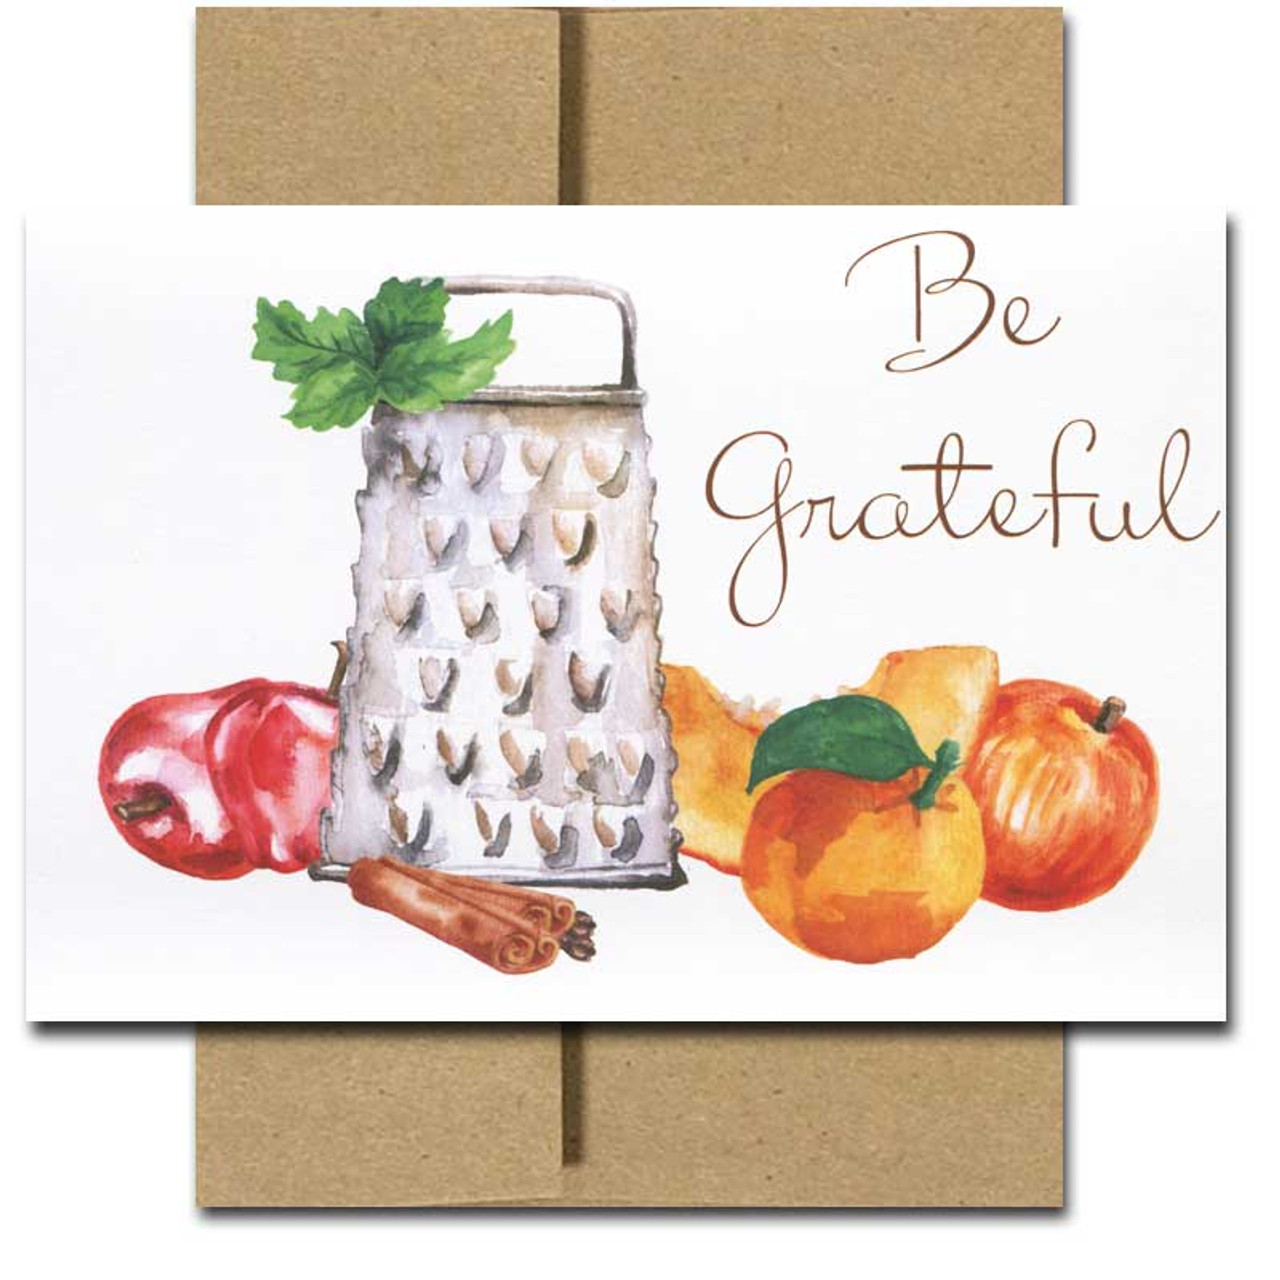 Thanksgiving Card - Be Grateful. Cover features watercolor illustration food grater surrounded by  fruits and spices.